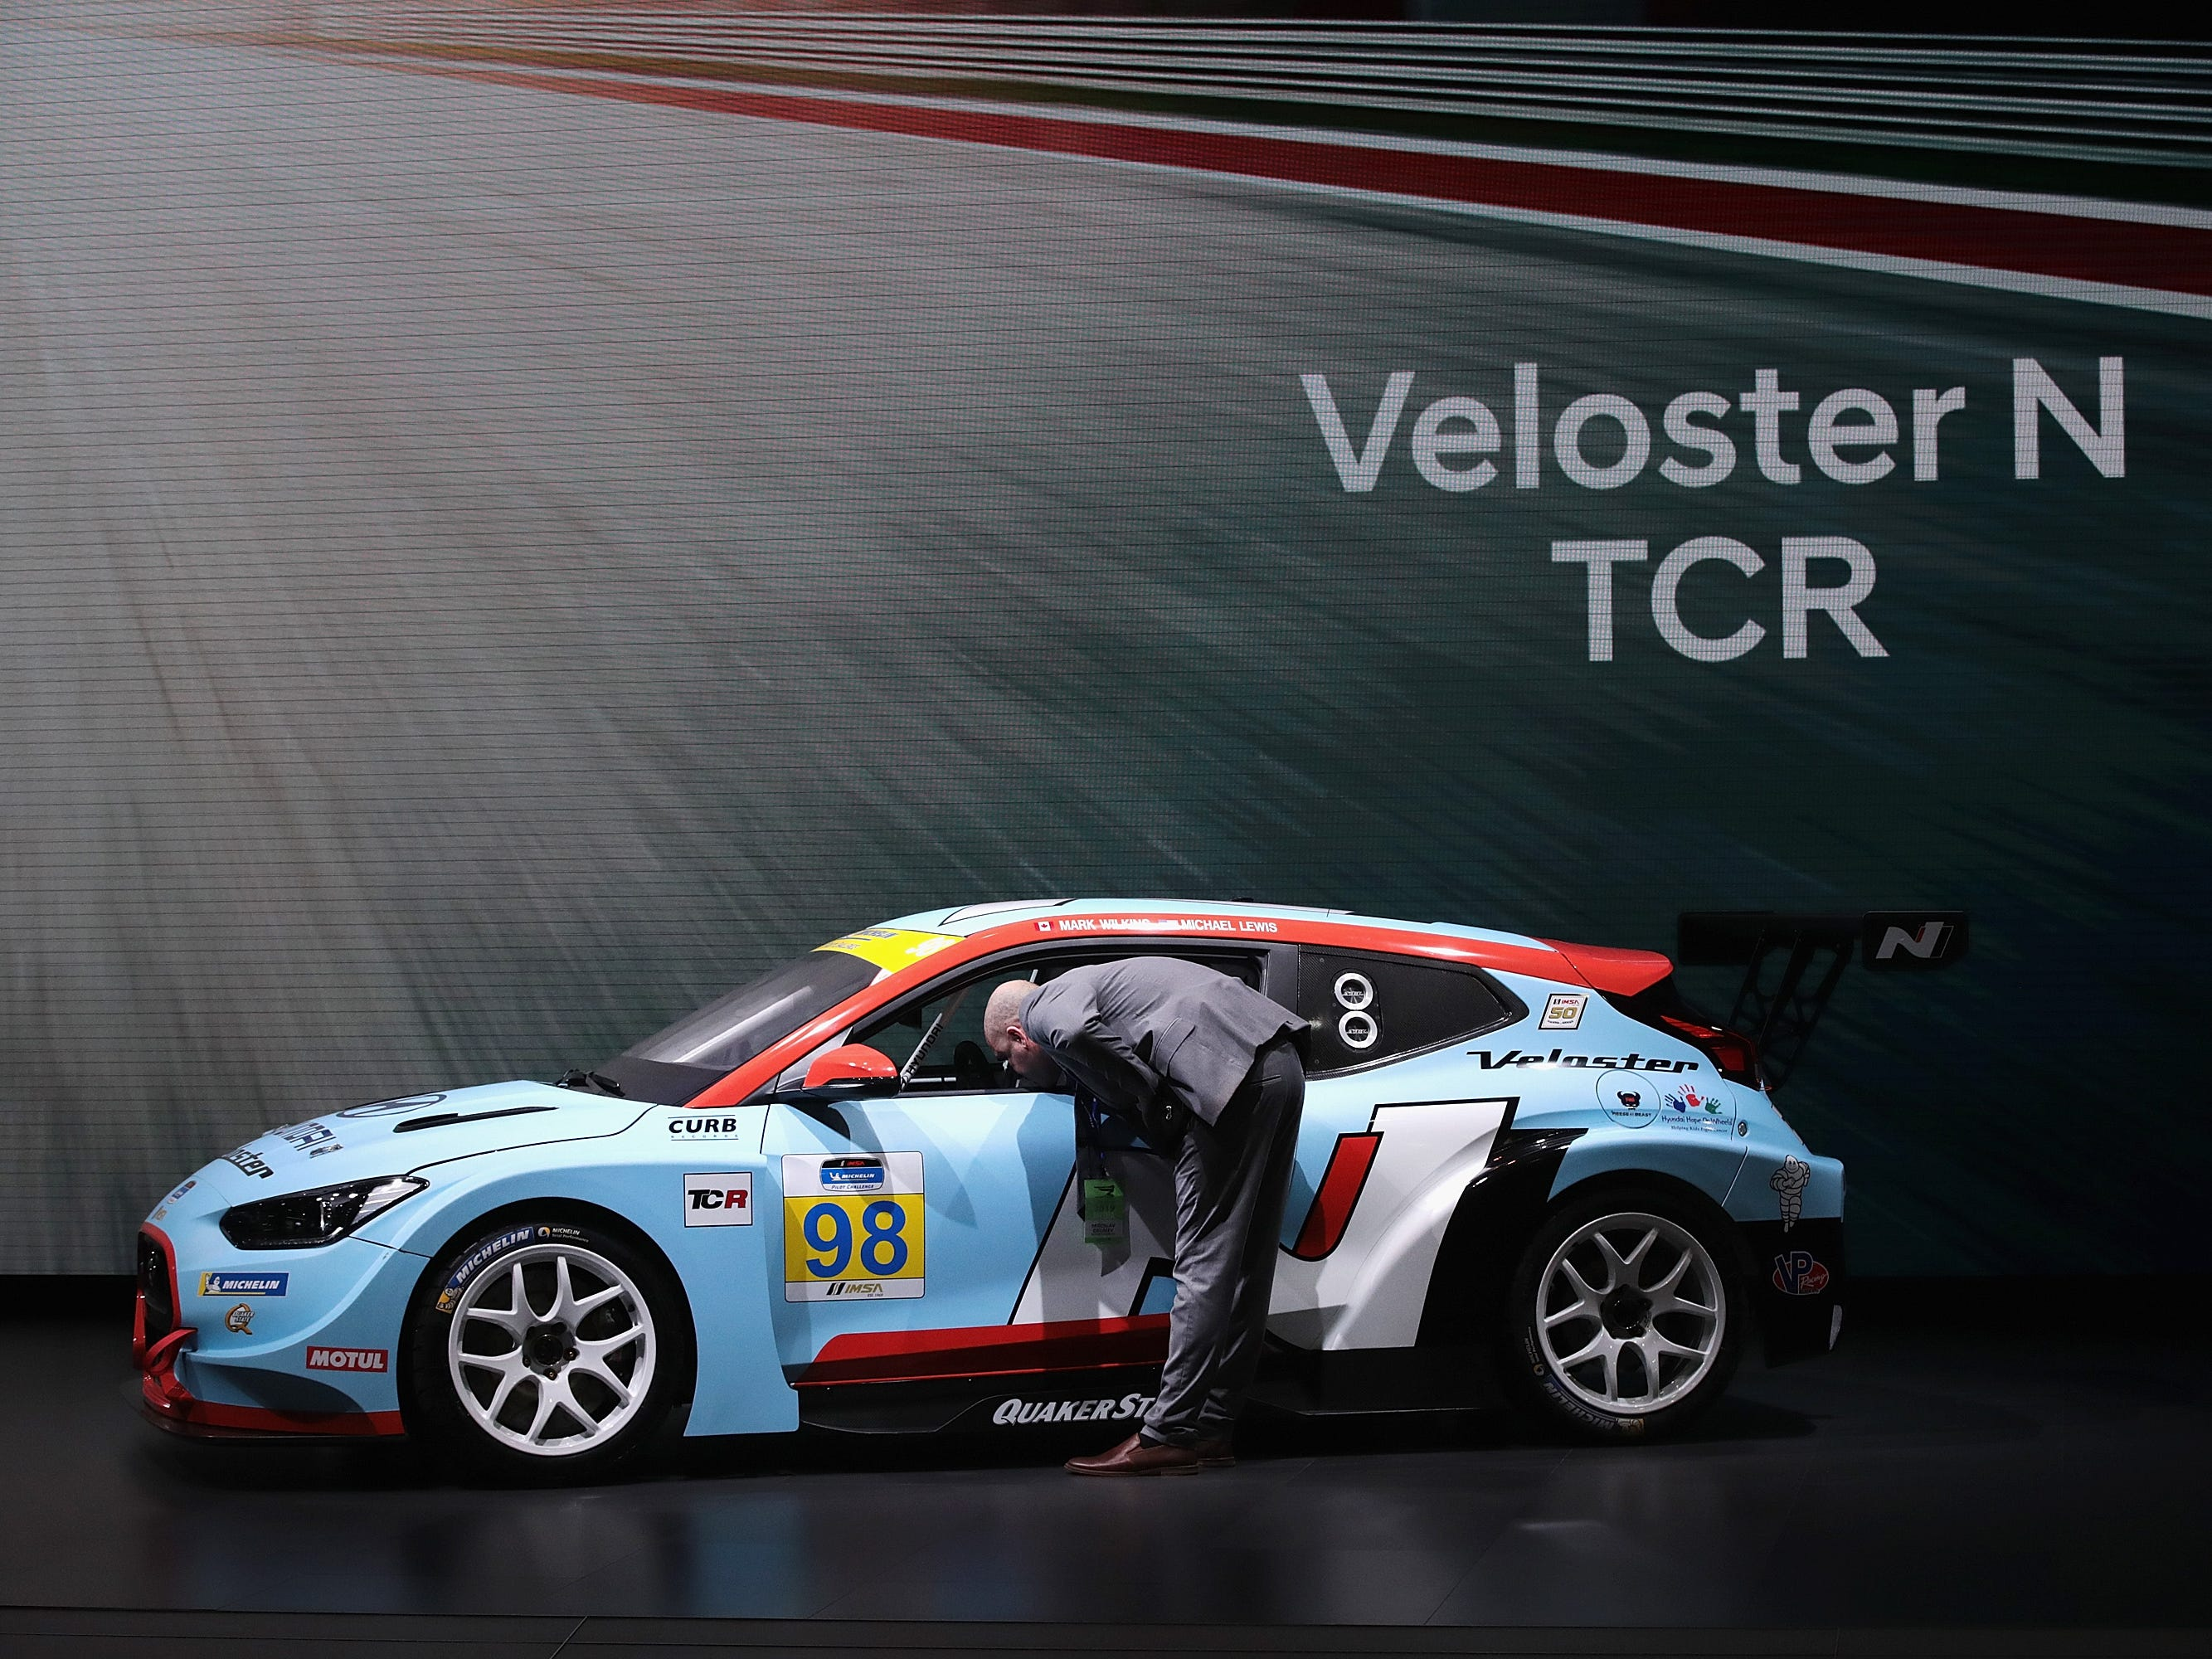 The Hyundai Veloster N TCR.